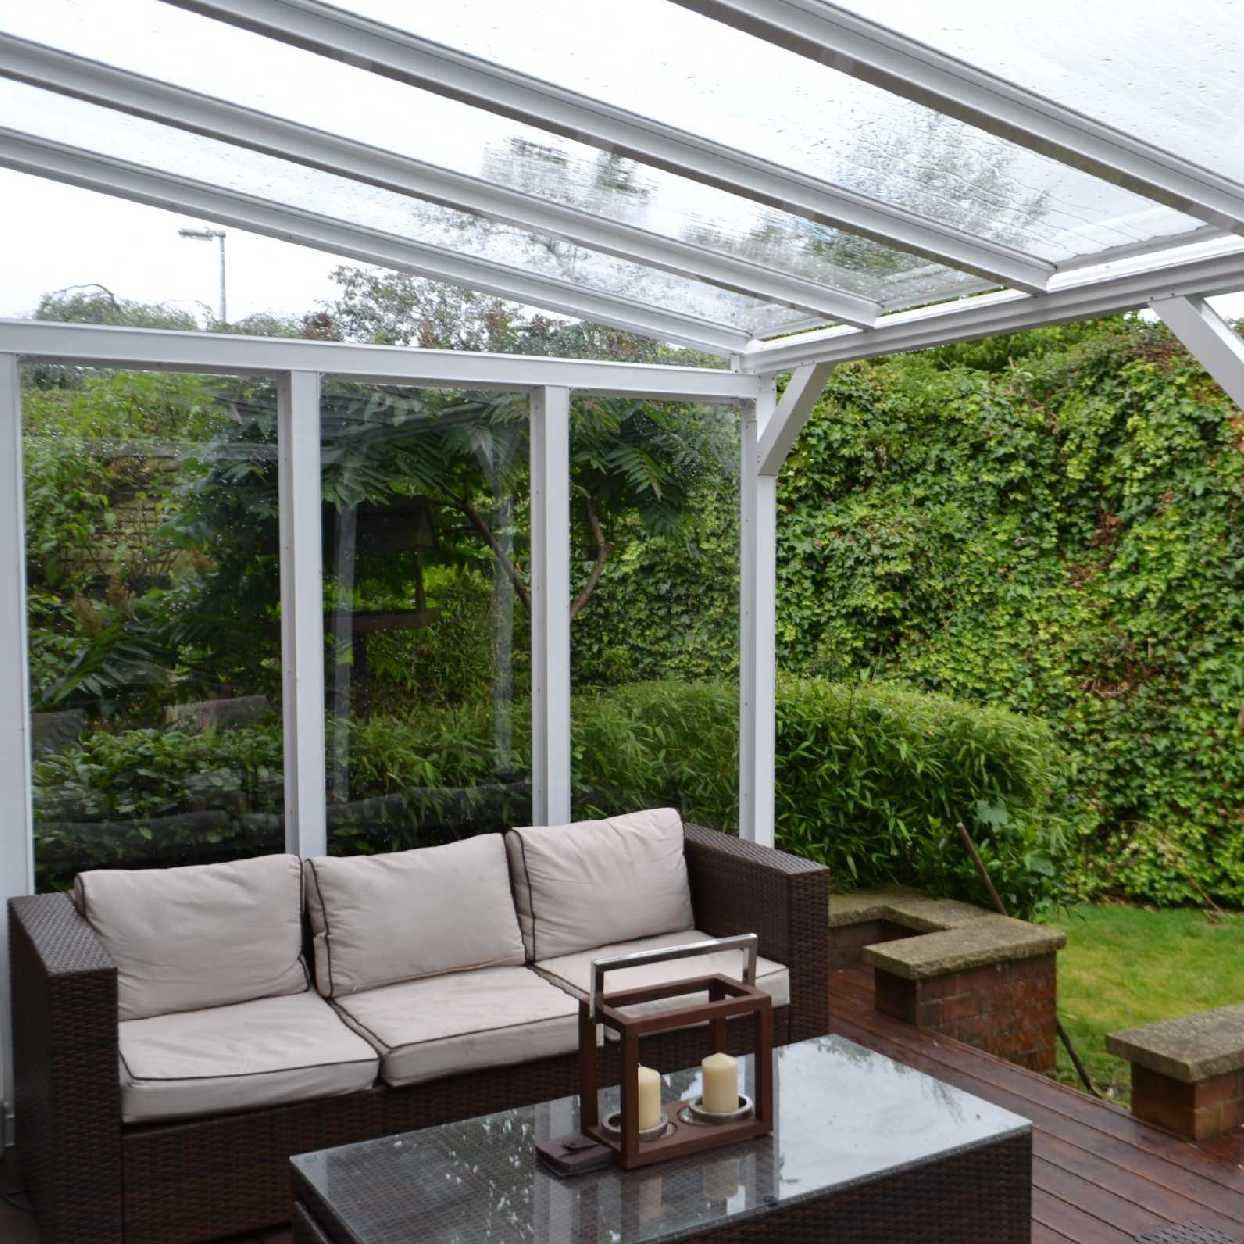 Great selection of Omega Smart White Lean-To Canopy with 16mm Polycarbonate Glazing - 5.2m (W) x 3.0m (P), (3) Supporting Posts